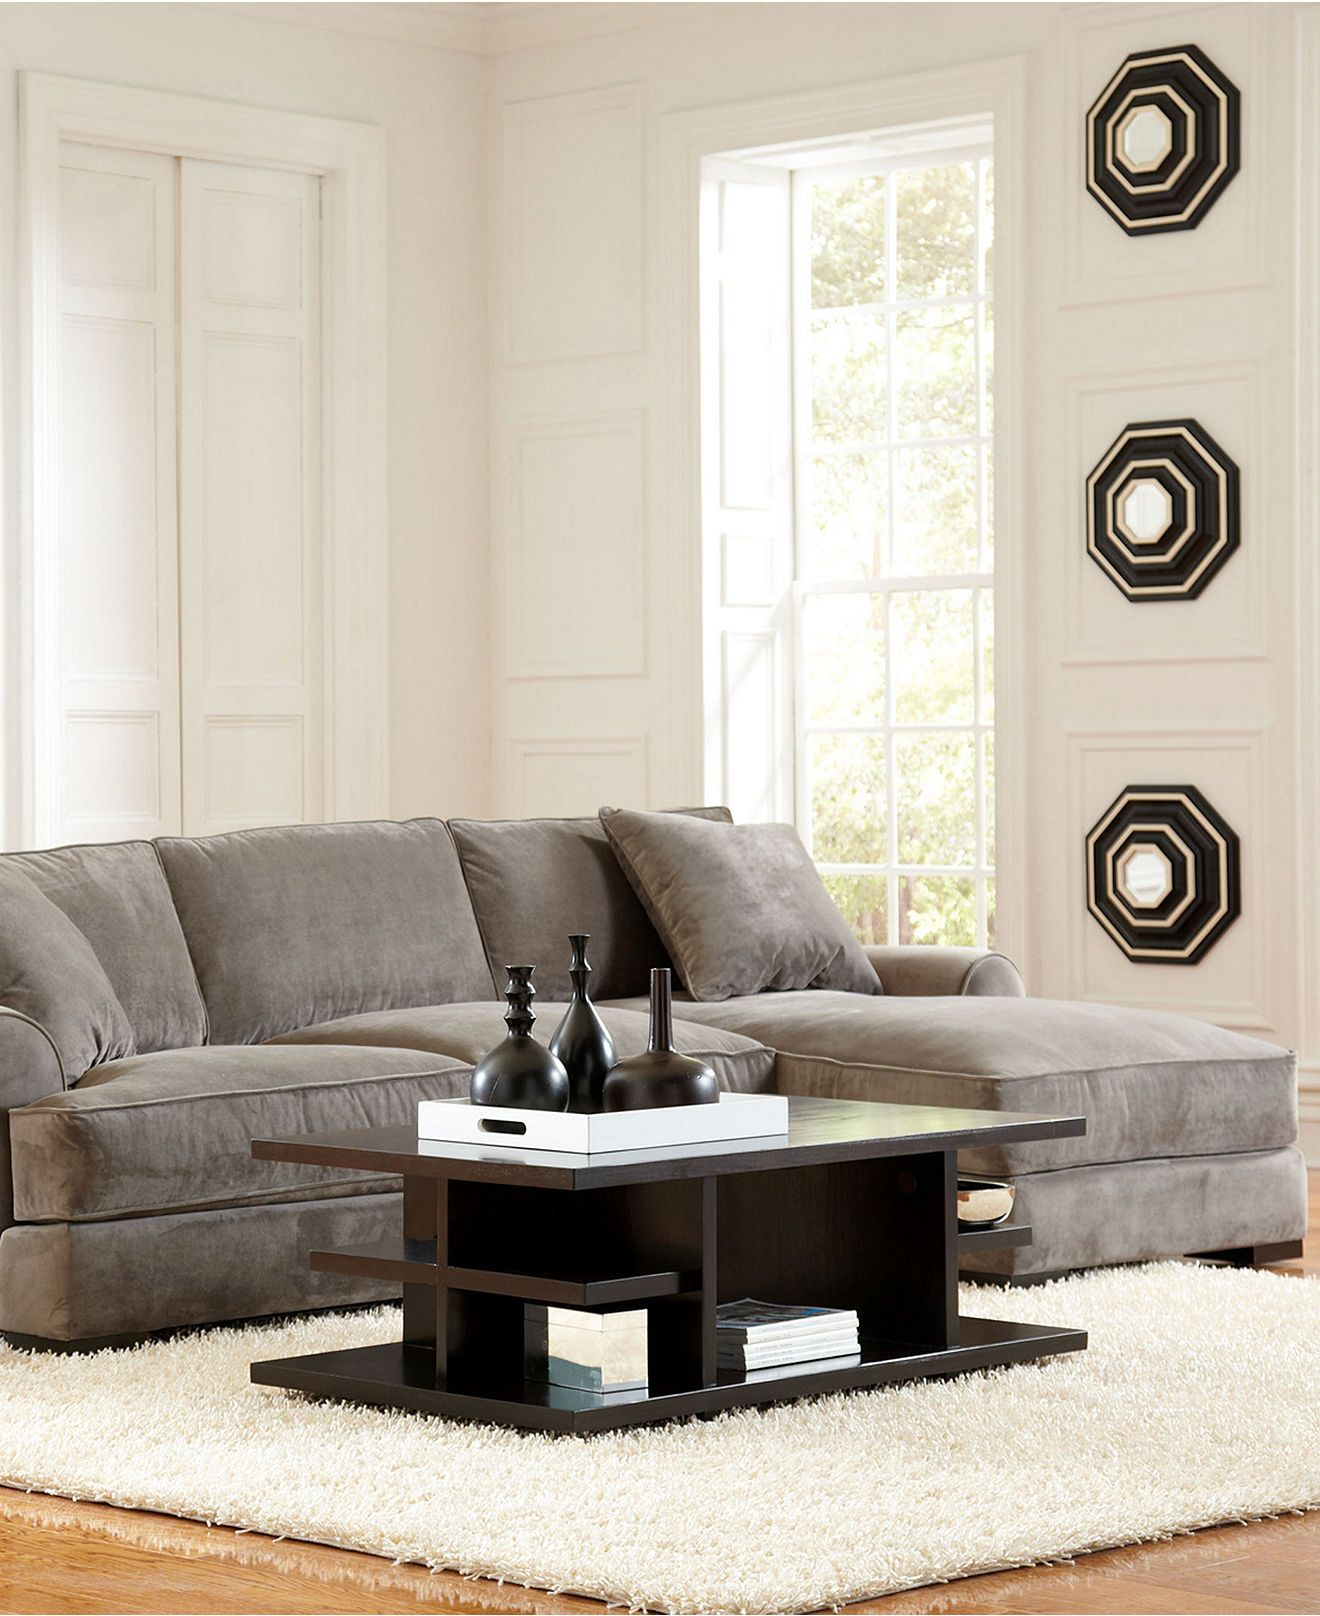 Chaise A But My Dream Couch Chaise Sofa From Macy S Best Sofa Ever We Have